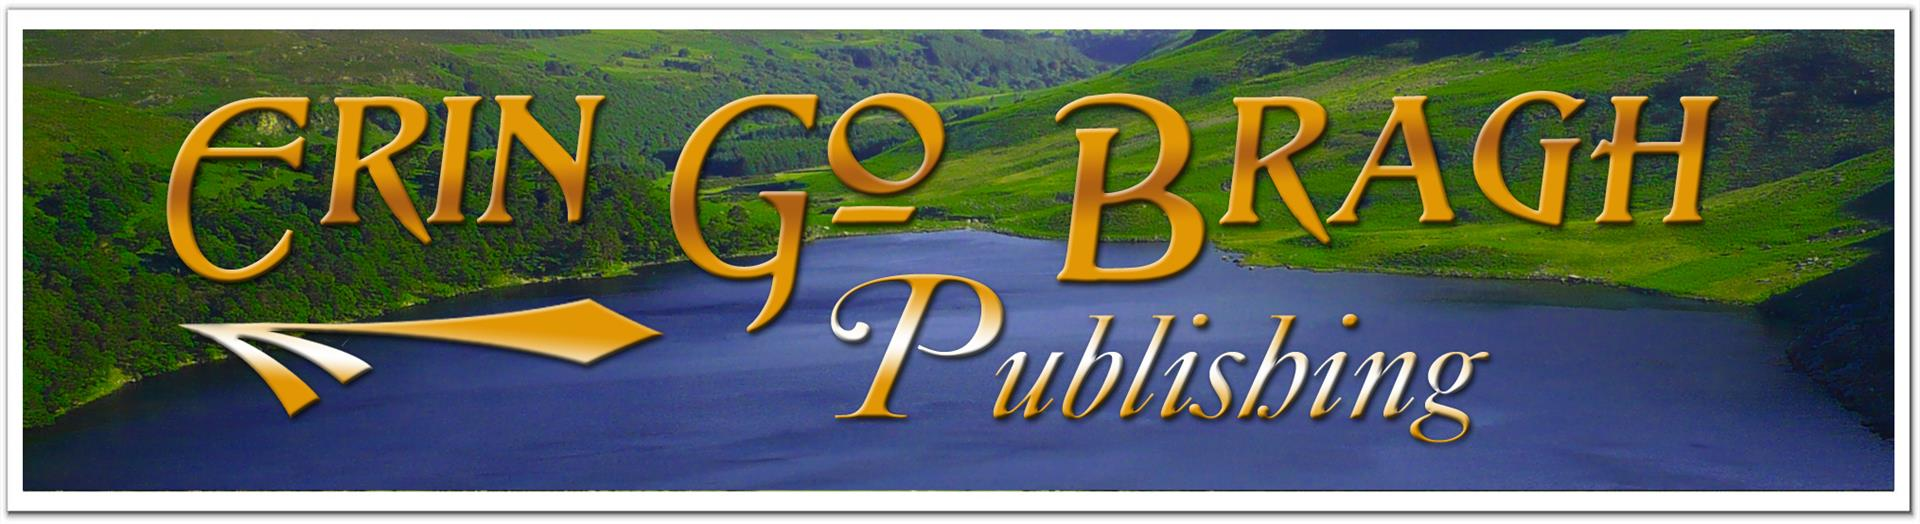 erin-go-braugh-publishing4